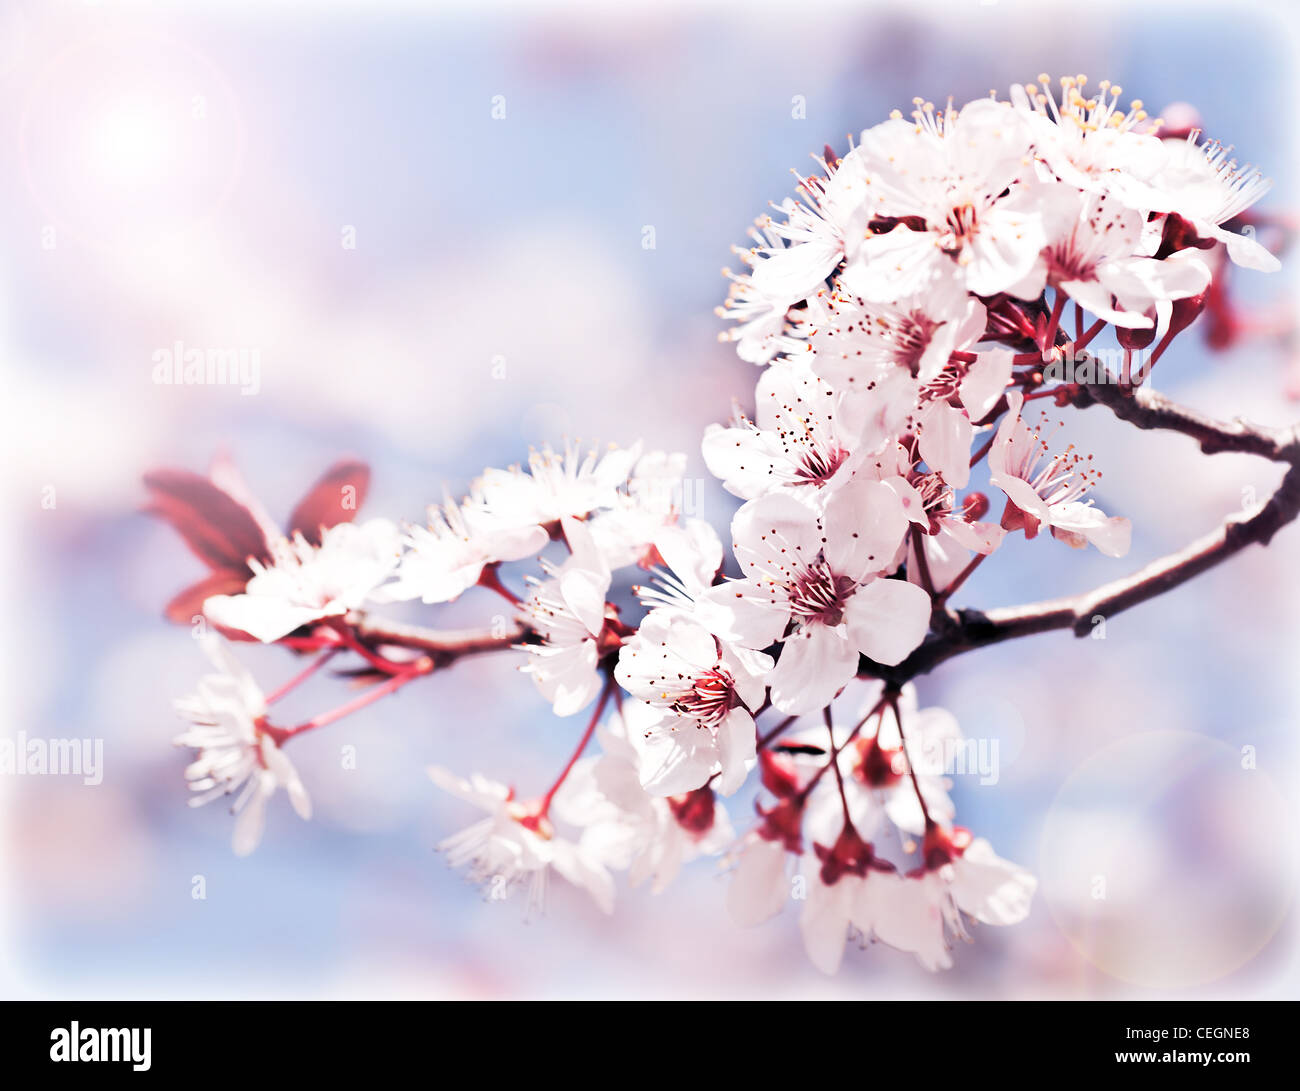 Blooming tree at spring, fresh pink flowers on the branch of fruit tree, plant blossom abstract background, seasonal Stock Photo